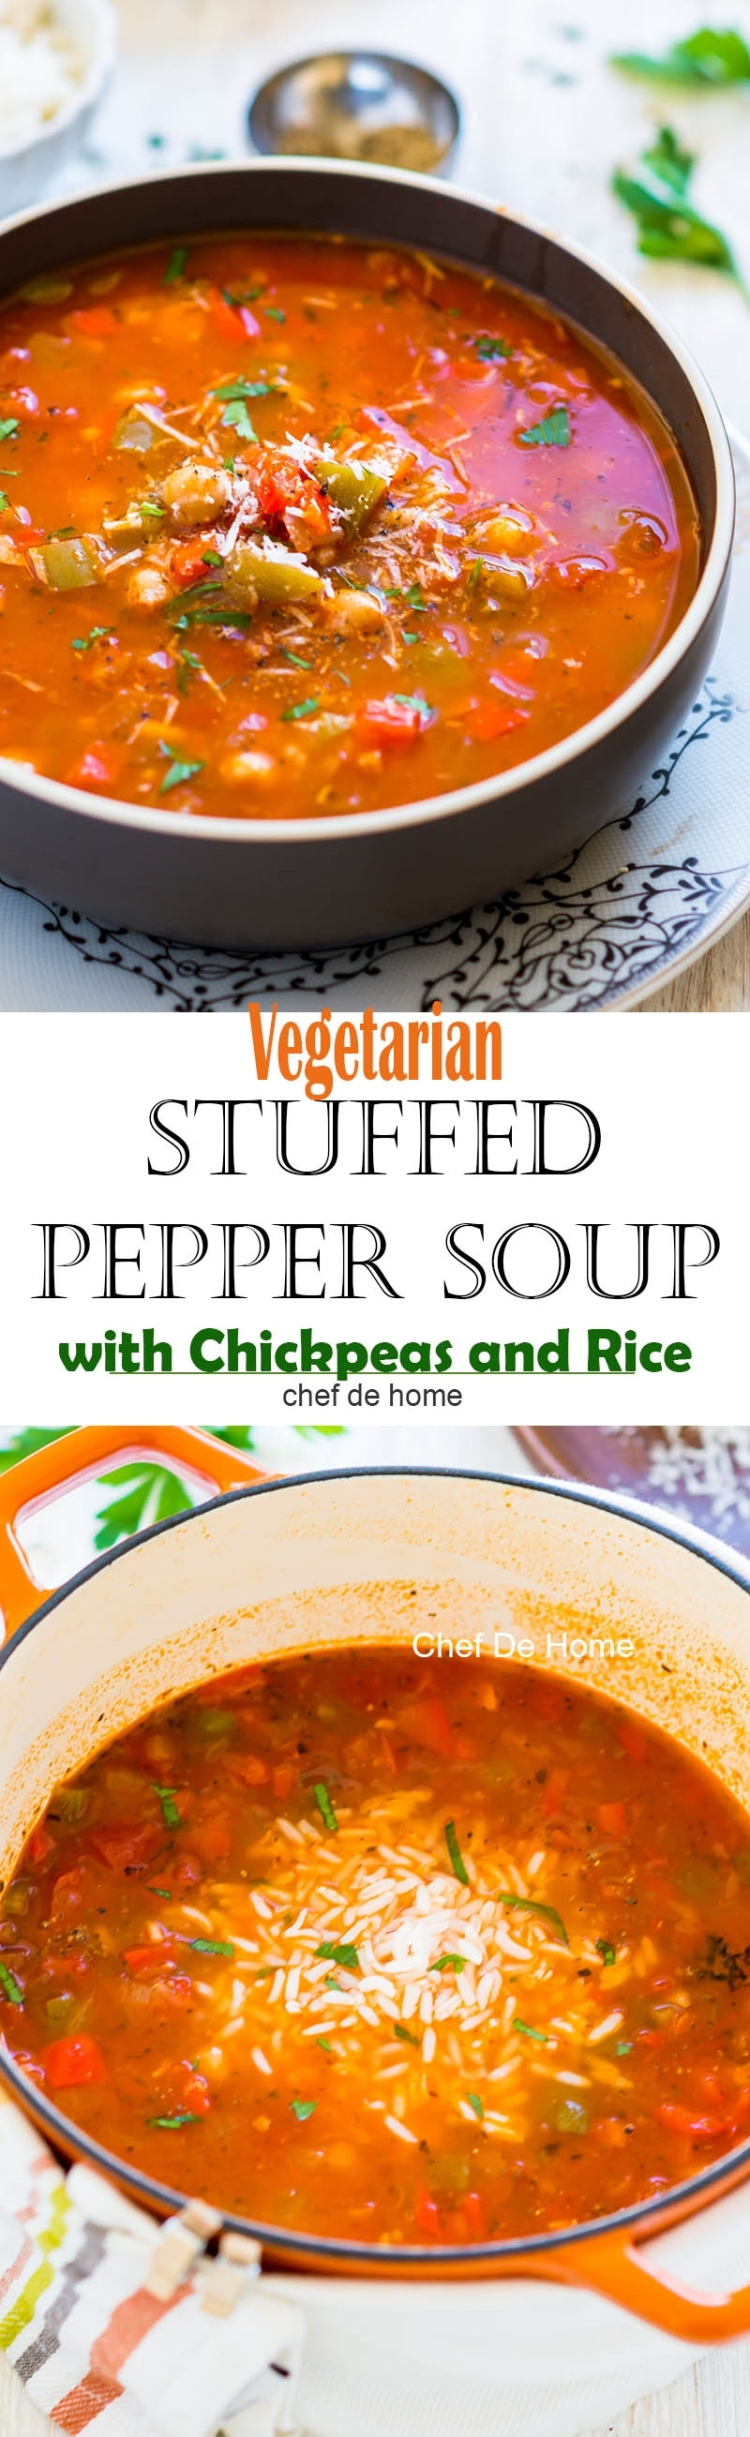 Easy homemade vegetarian stuffed pepper soup with two kind of peppers chickpeas and rice gluten free | chefdehome.com